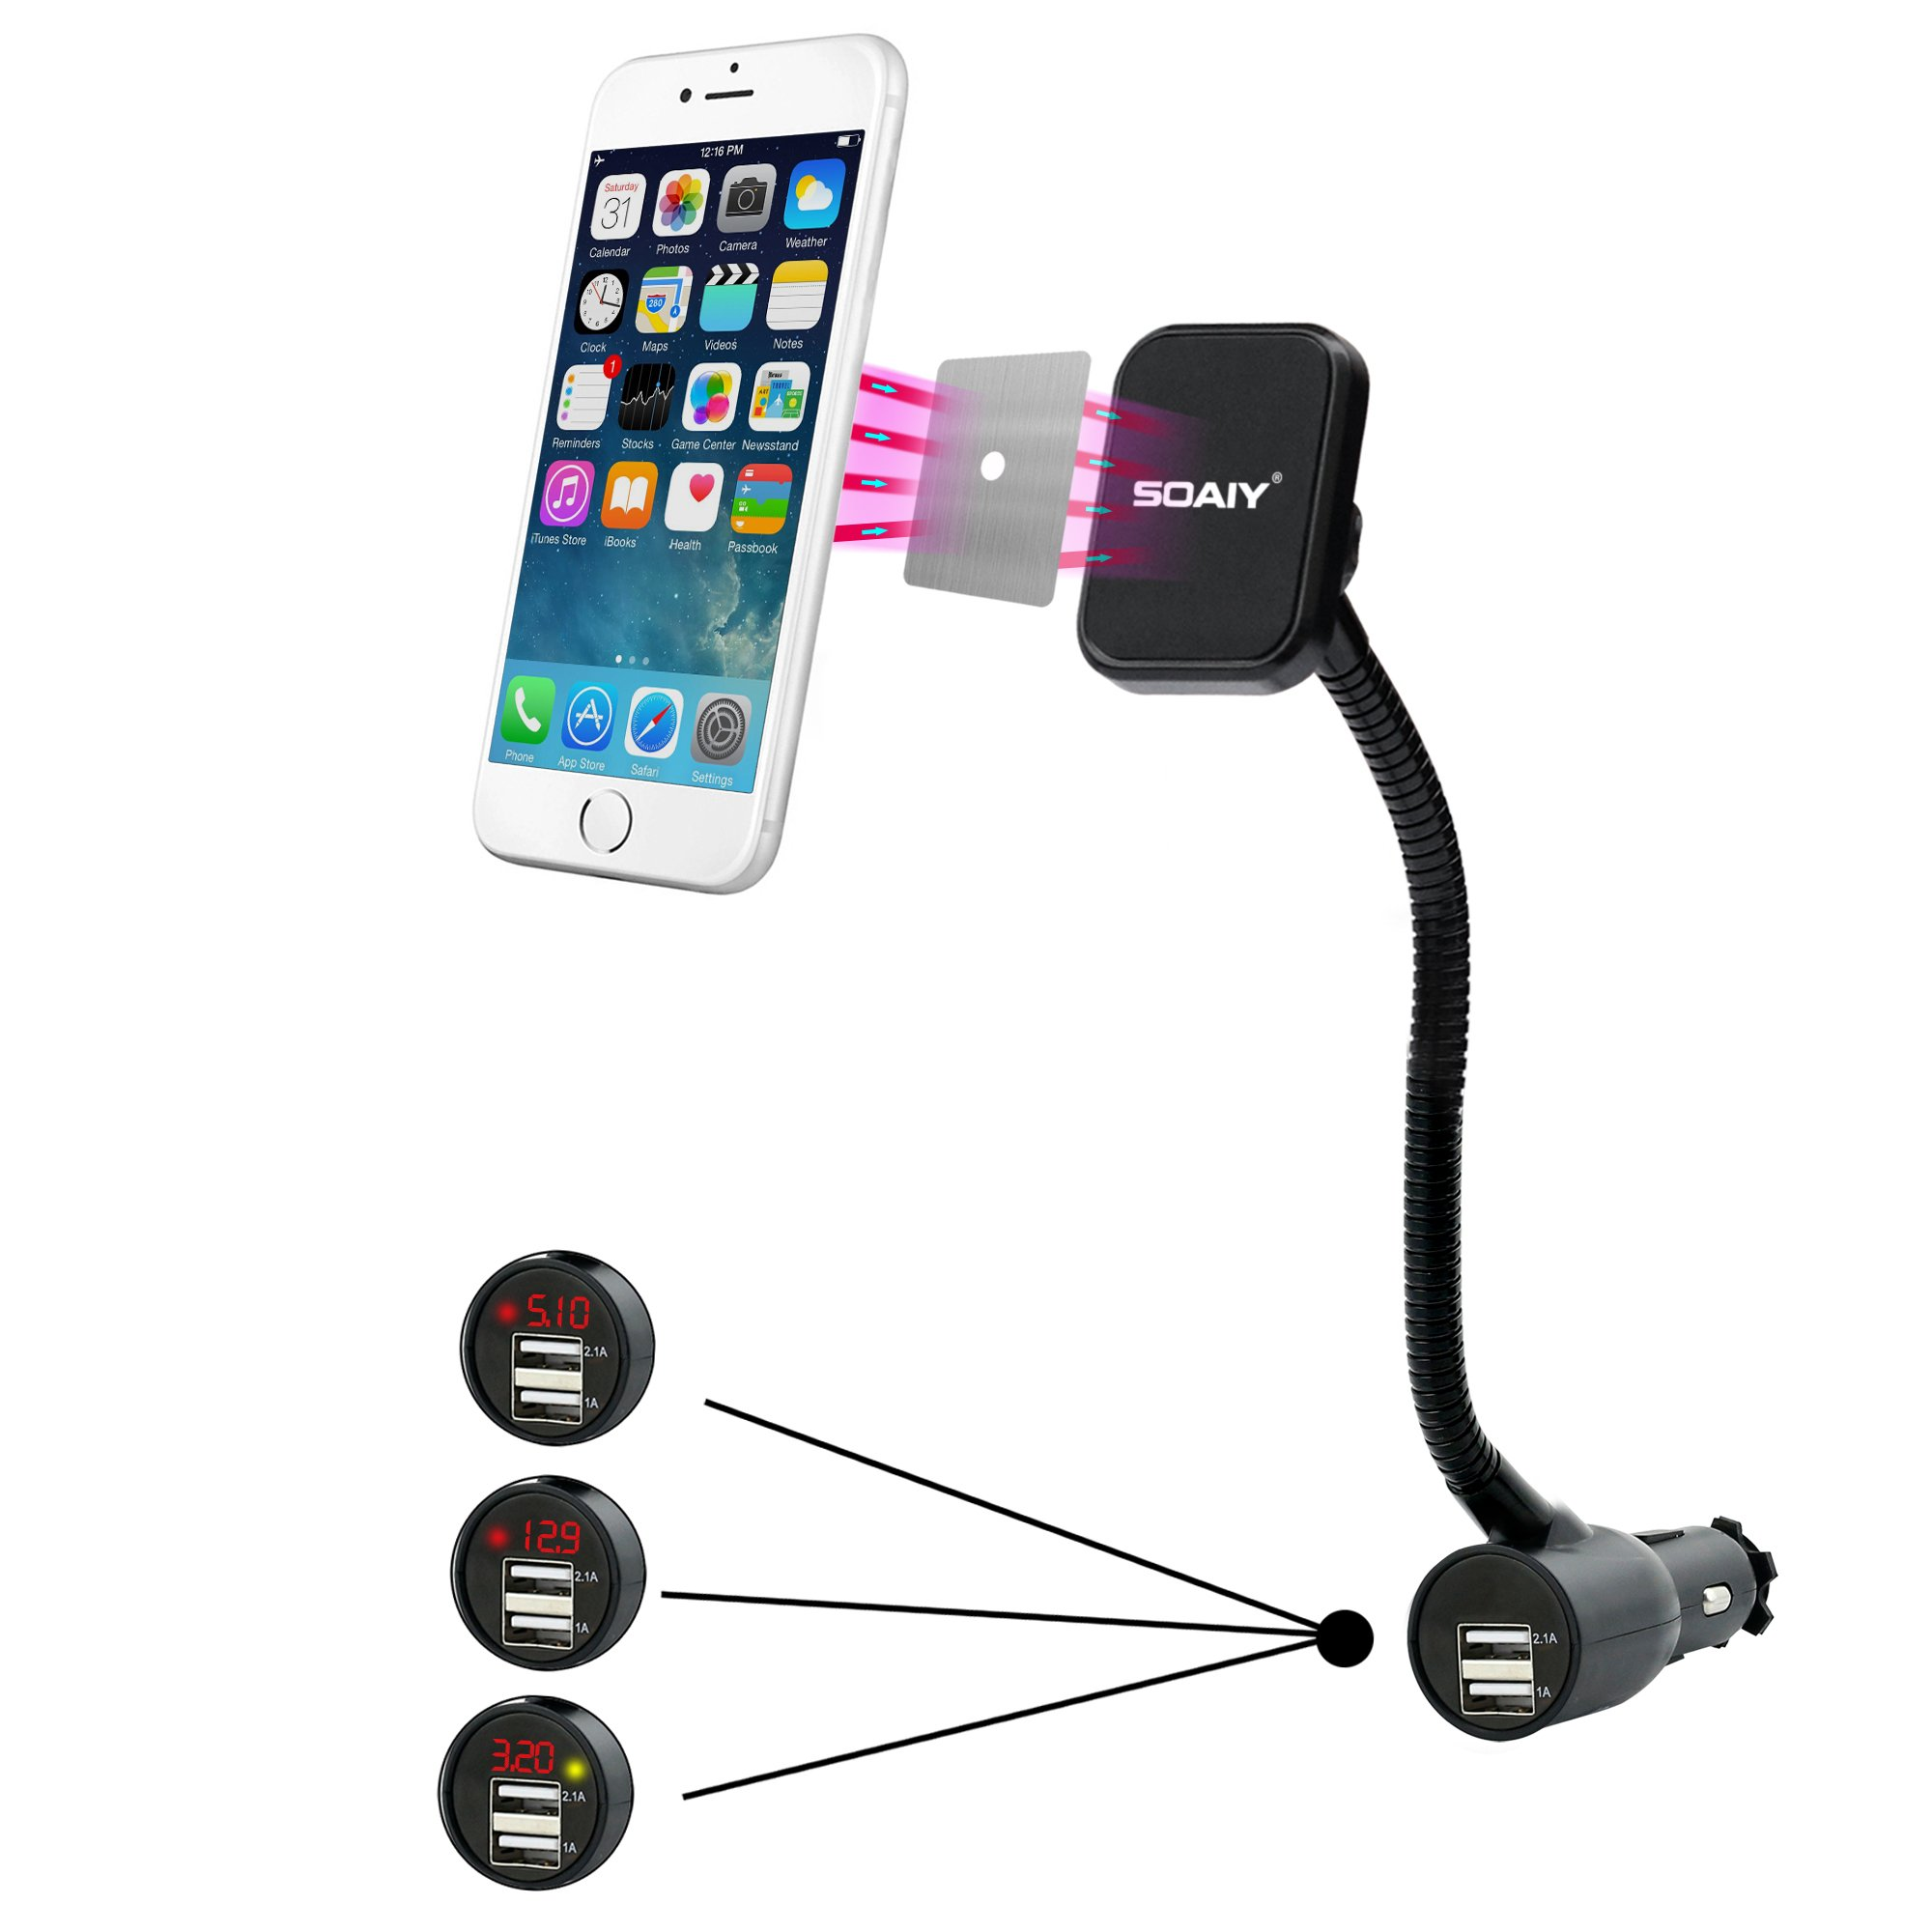 SOAIY 3-in-1 Cigarette Lighter Magnet Car Mount + Car Charger + Voltage Detector,Car Holder Cradle w/Dual USB 3.1A Charger,Display Voltage Current Compitable with iPhone8 X 6s 6 5s Samsung S8 S7 S6